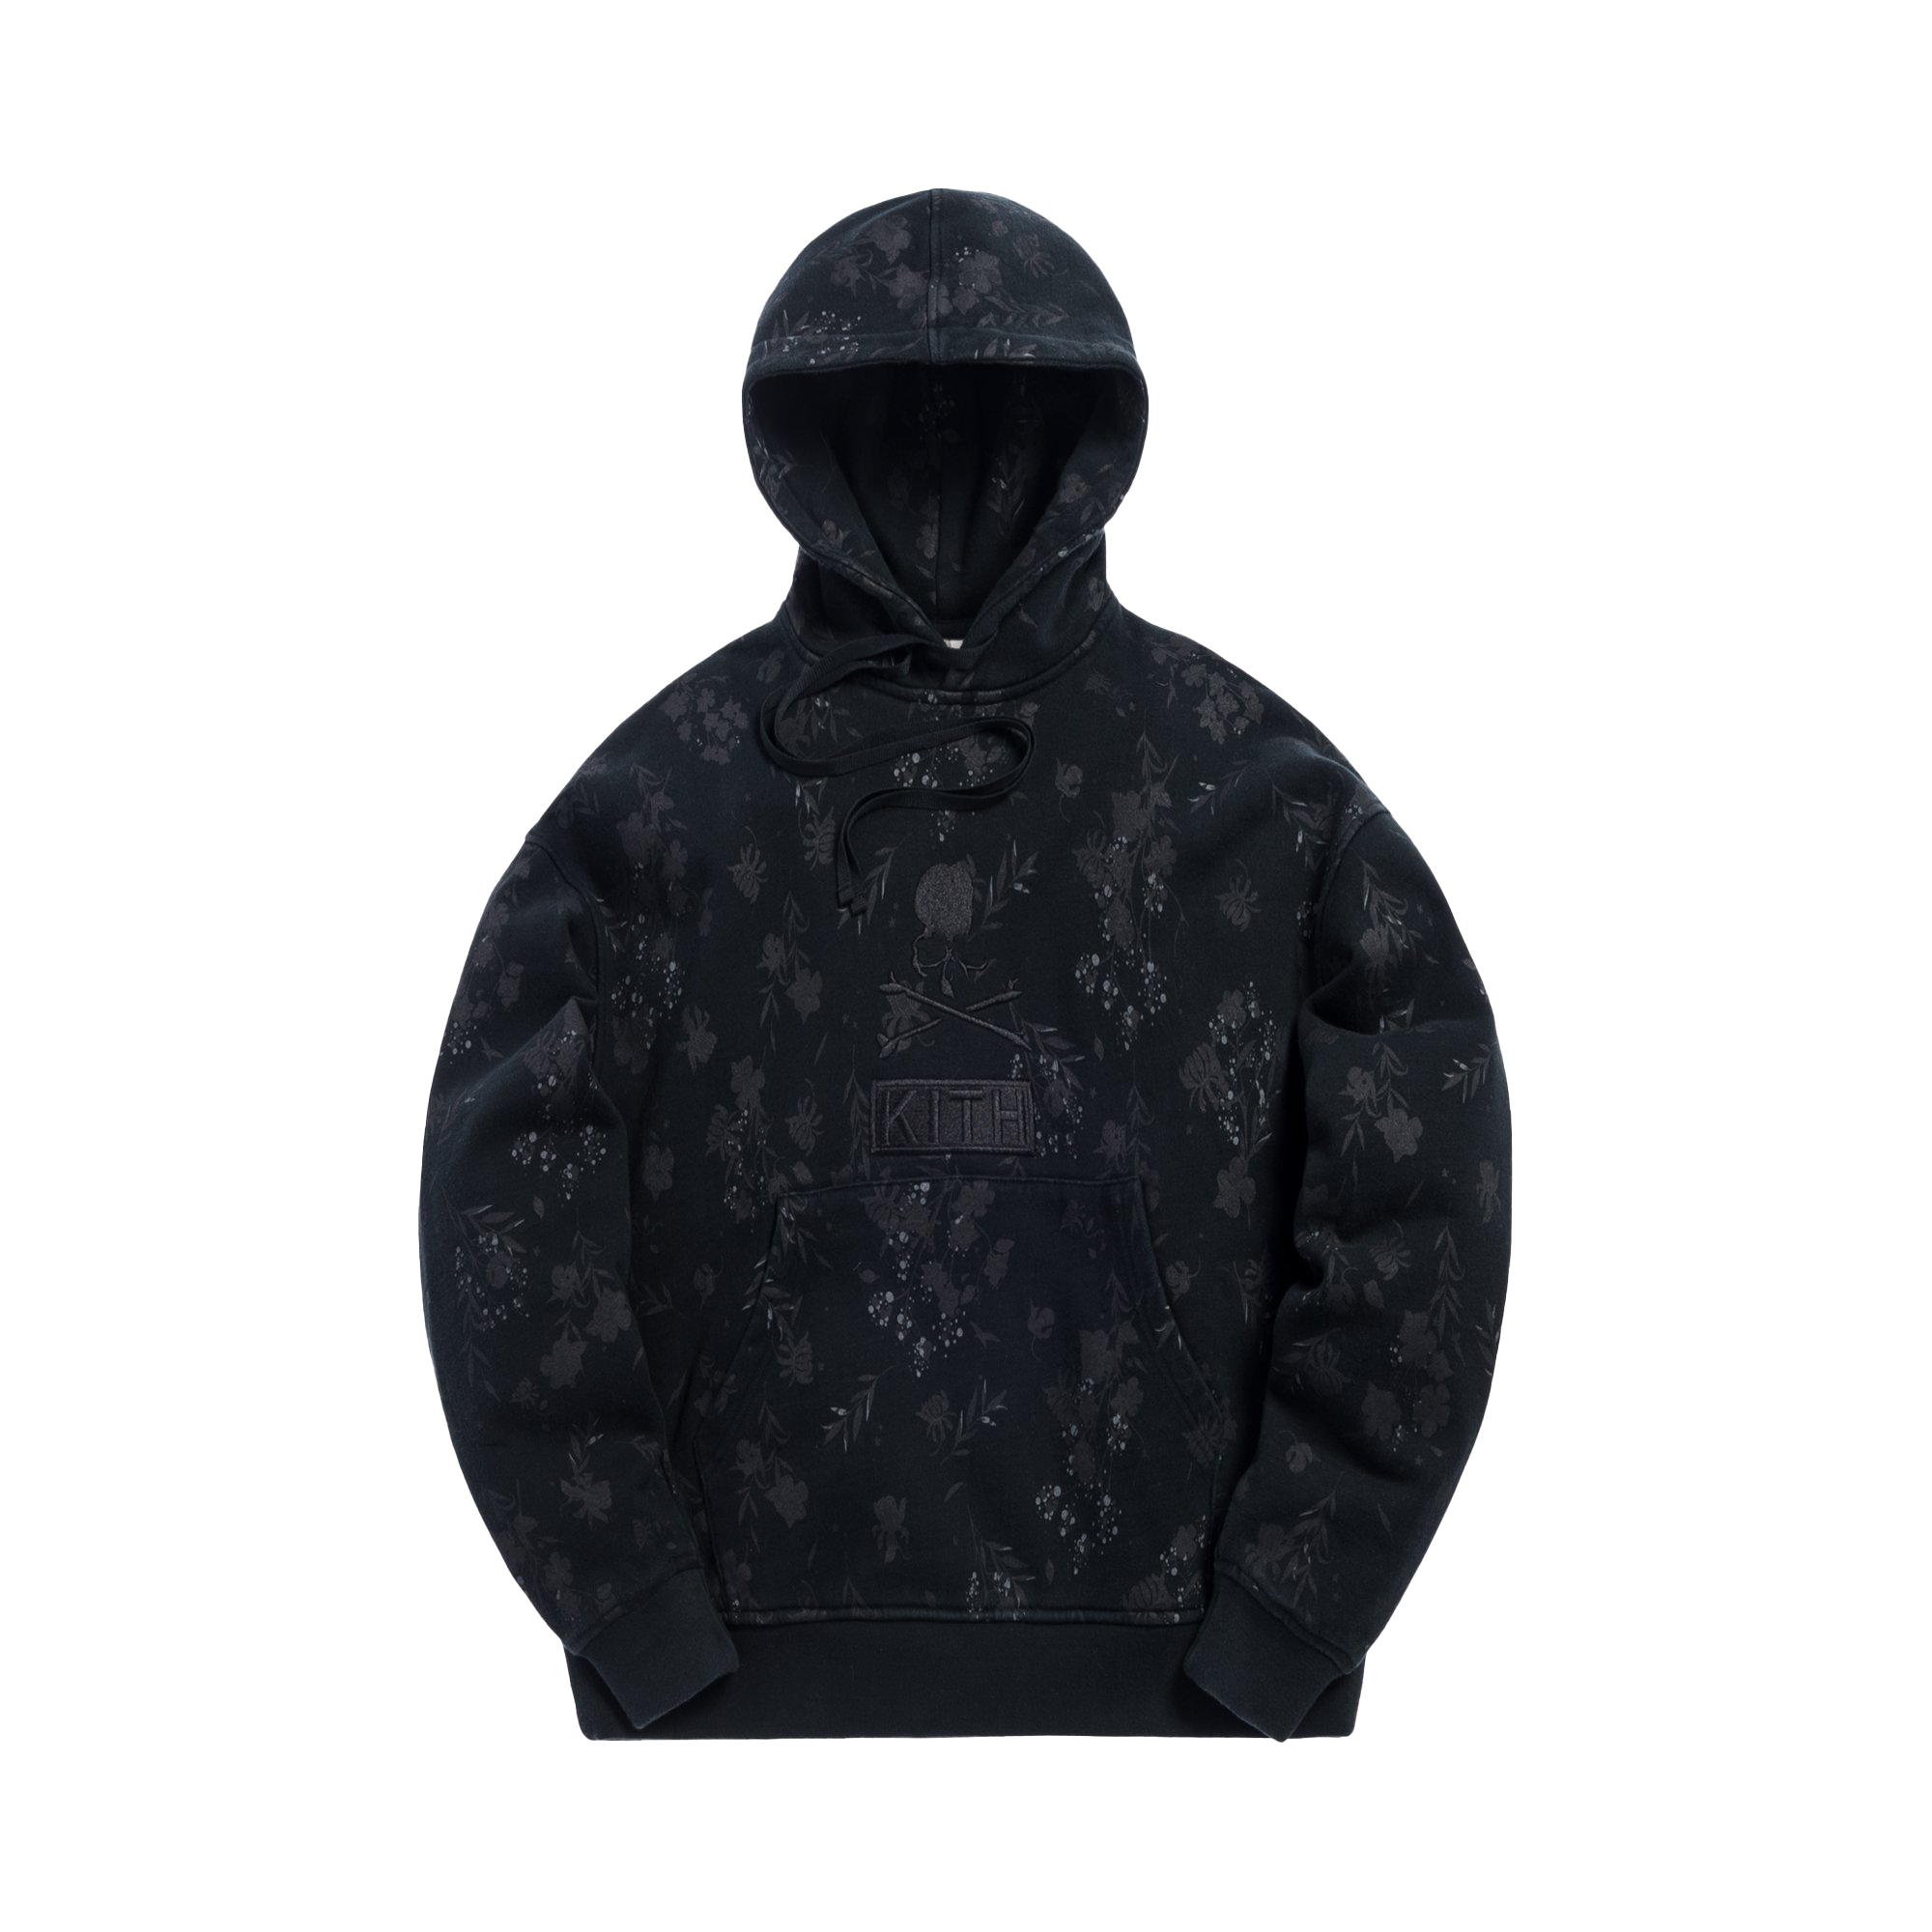 Kith x mastermind WORLD Fleece Pullover Hoodie Black